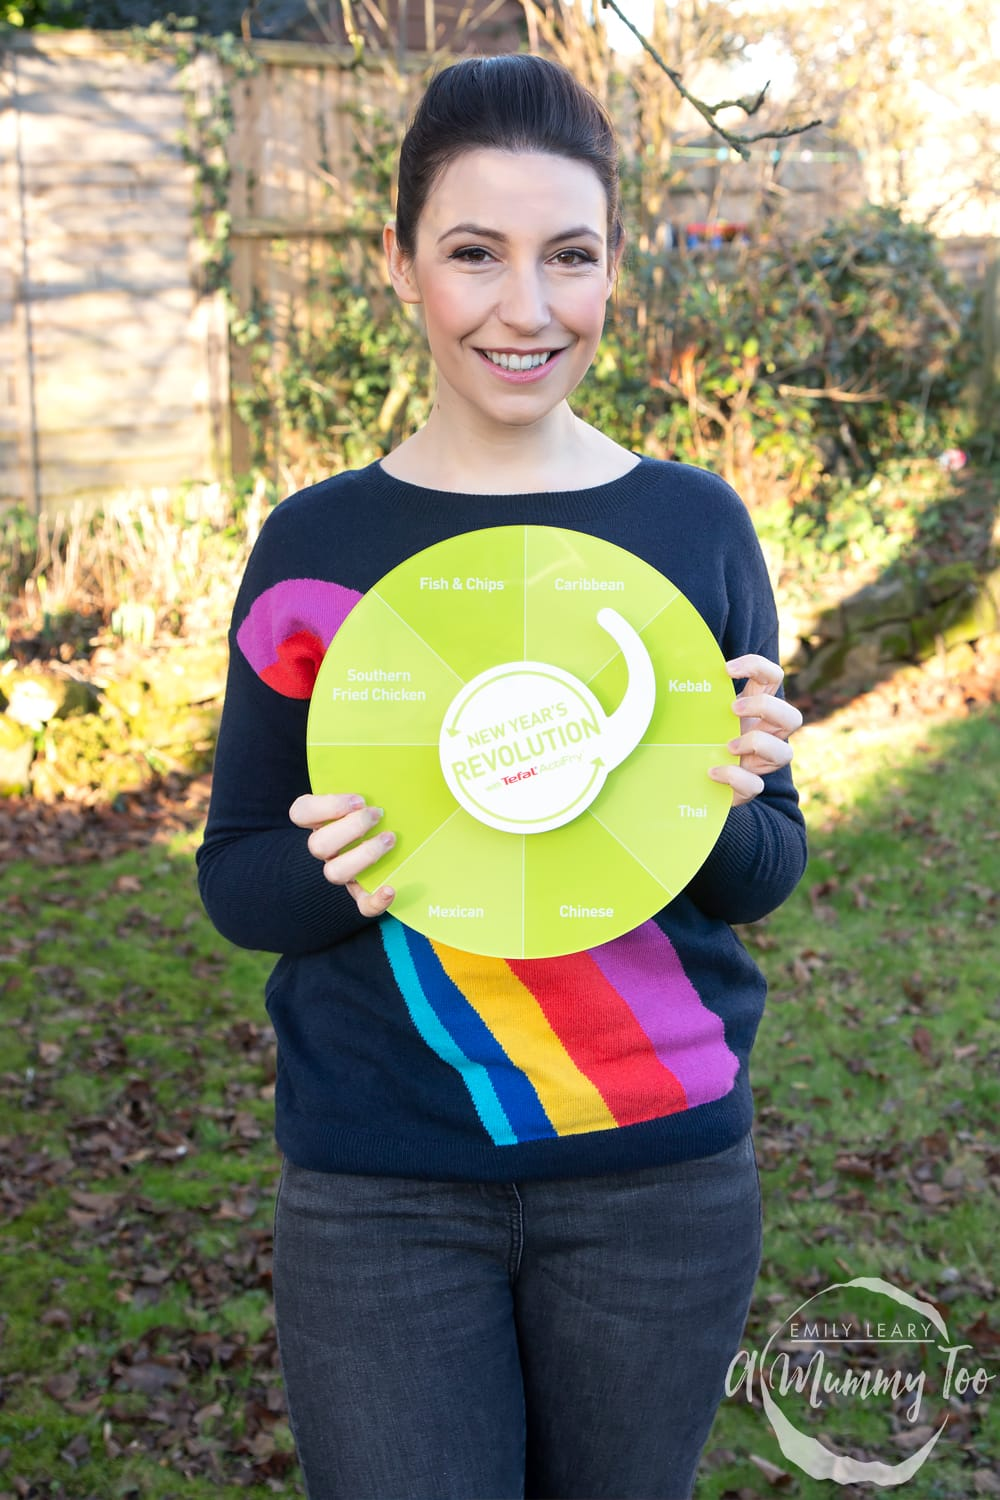 Emily Leary holding a New Year's Resolution wheel